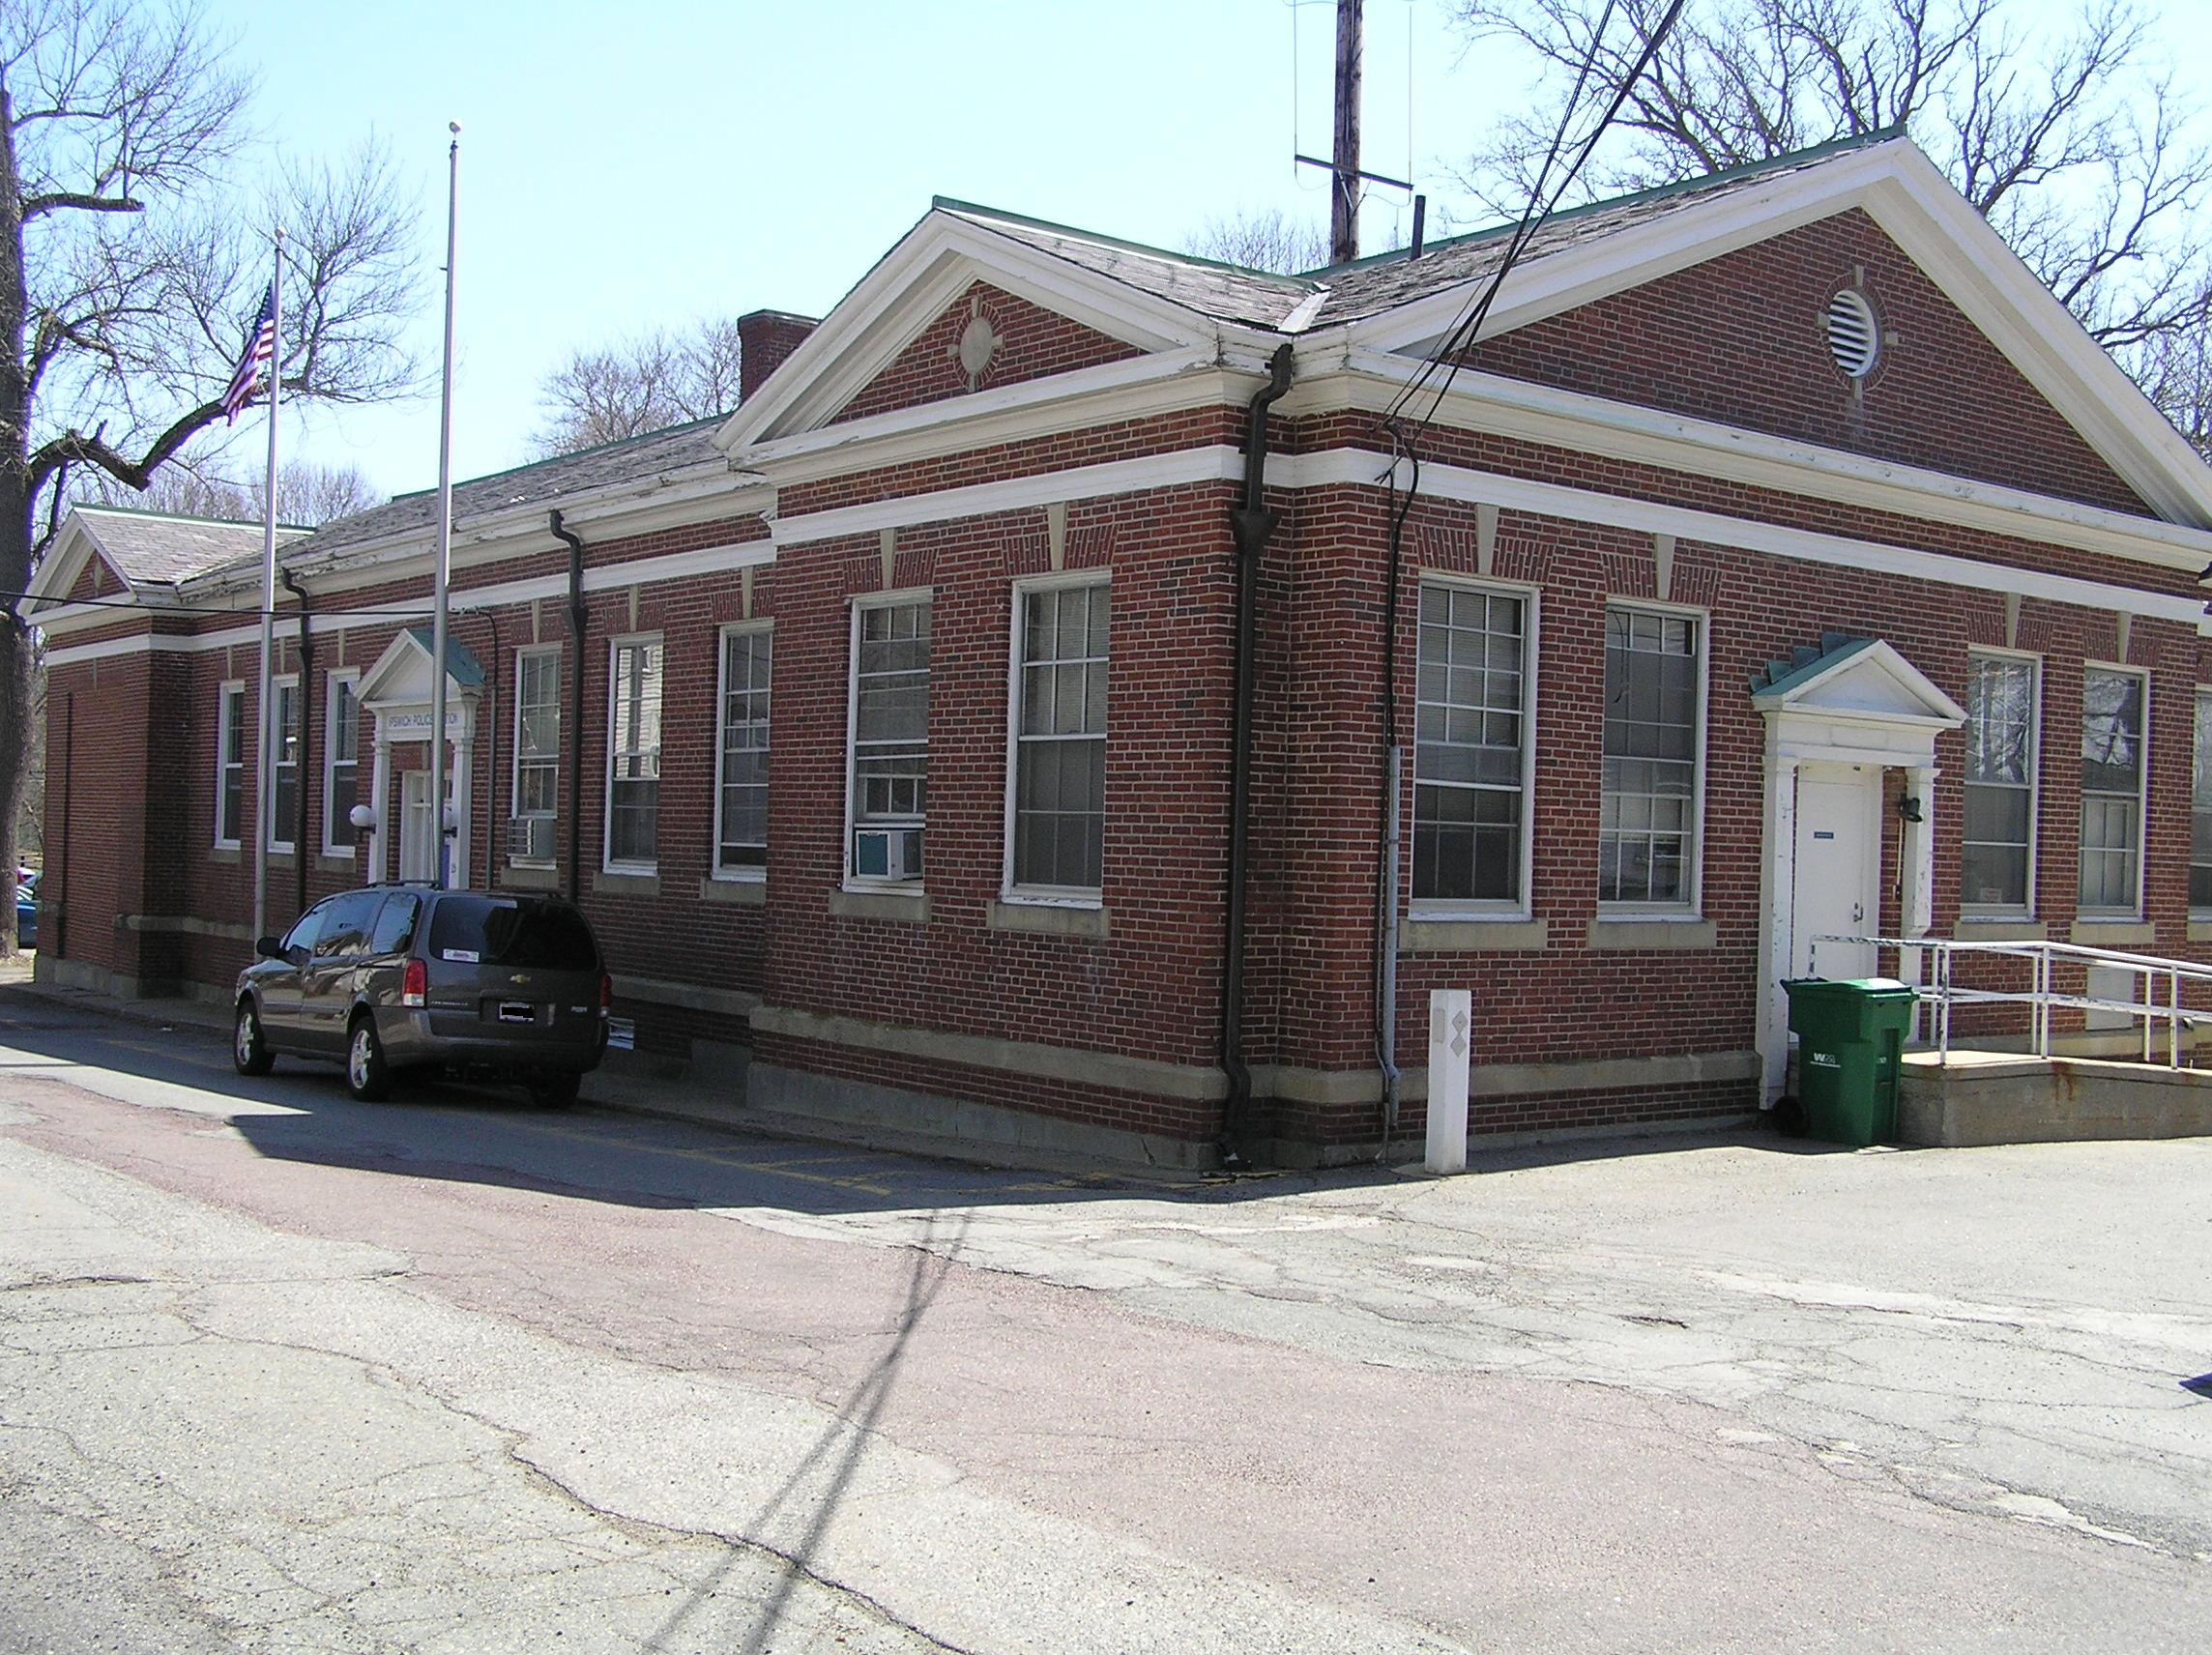 The Ipswich Police Department was formerly the Electric Department, constructed in 1938.